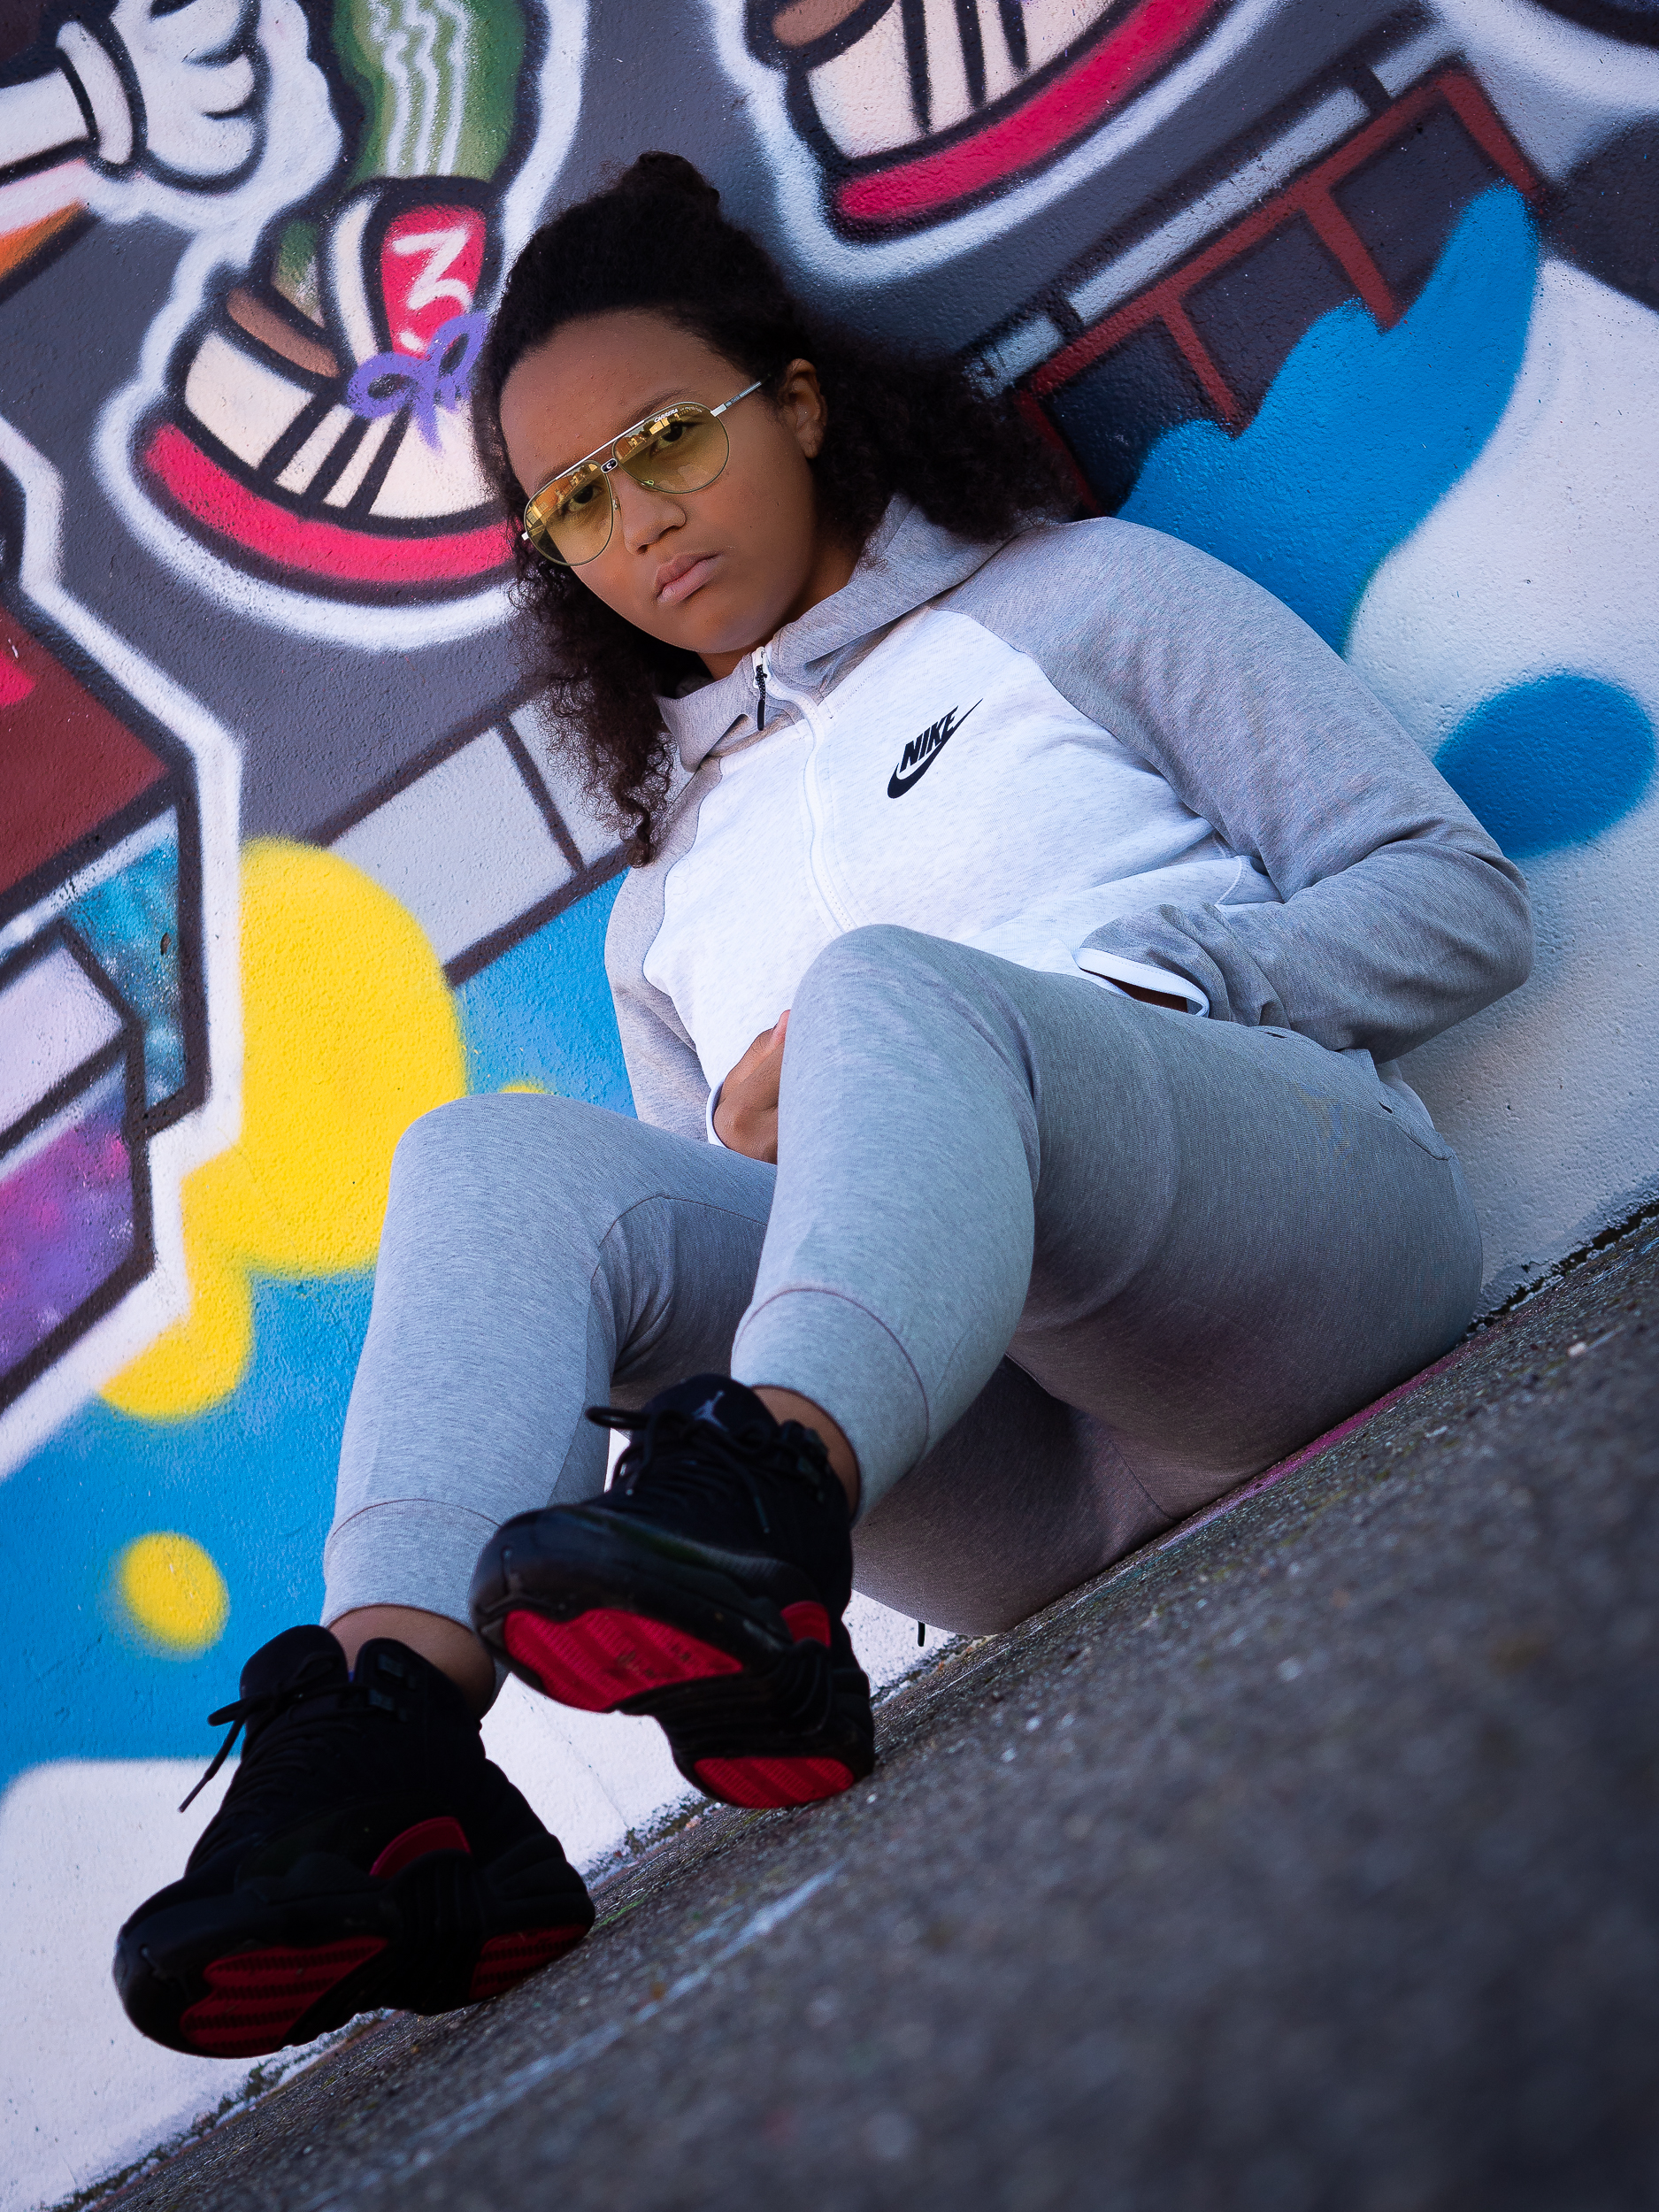 OUTFIT: BLACK AND GREY TRACKSUIT AVEC NIKE